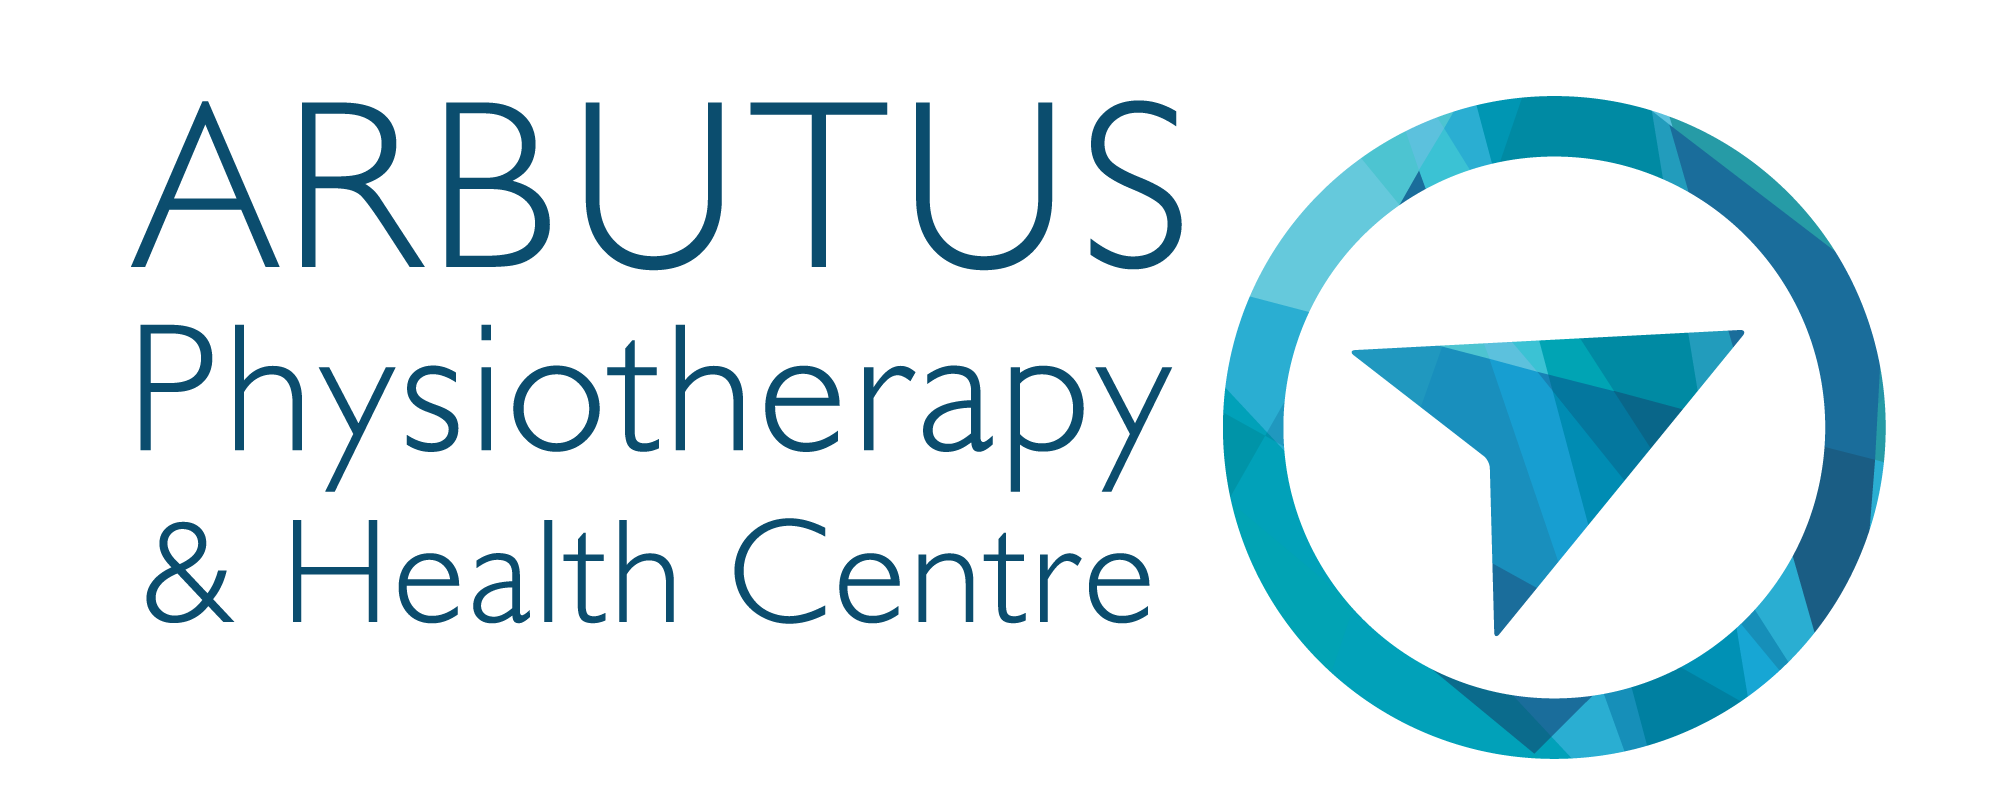 Arbutus Physiotherapy & Health Centre, Victoria.